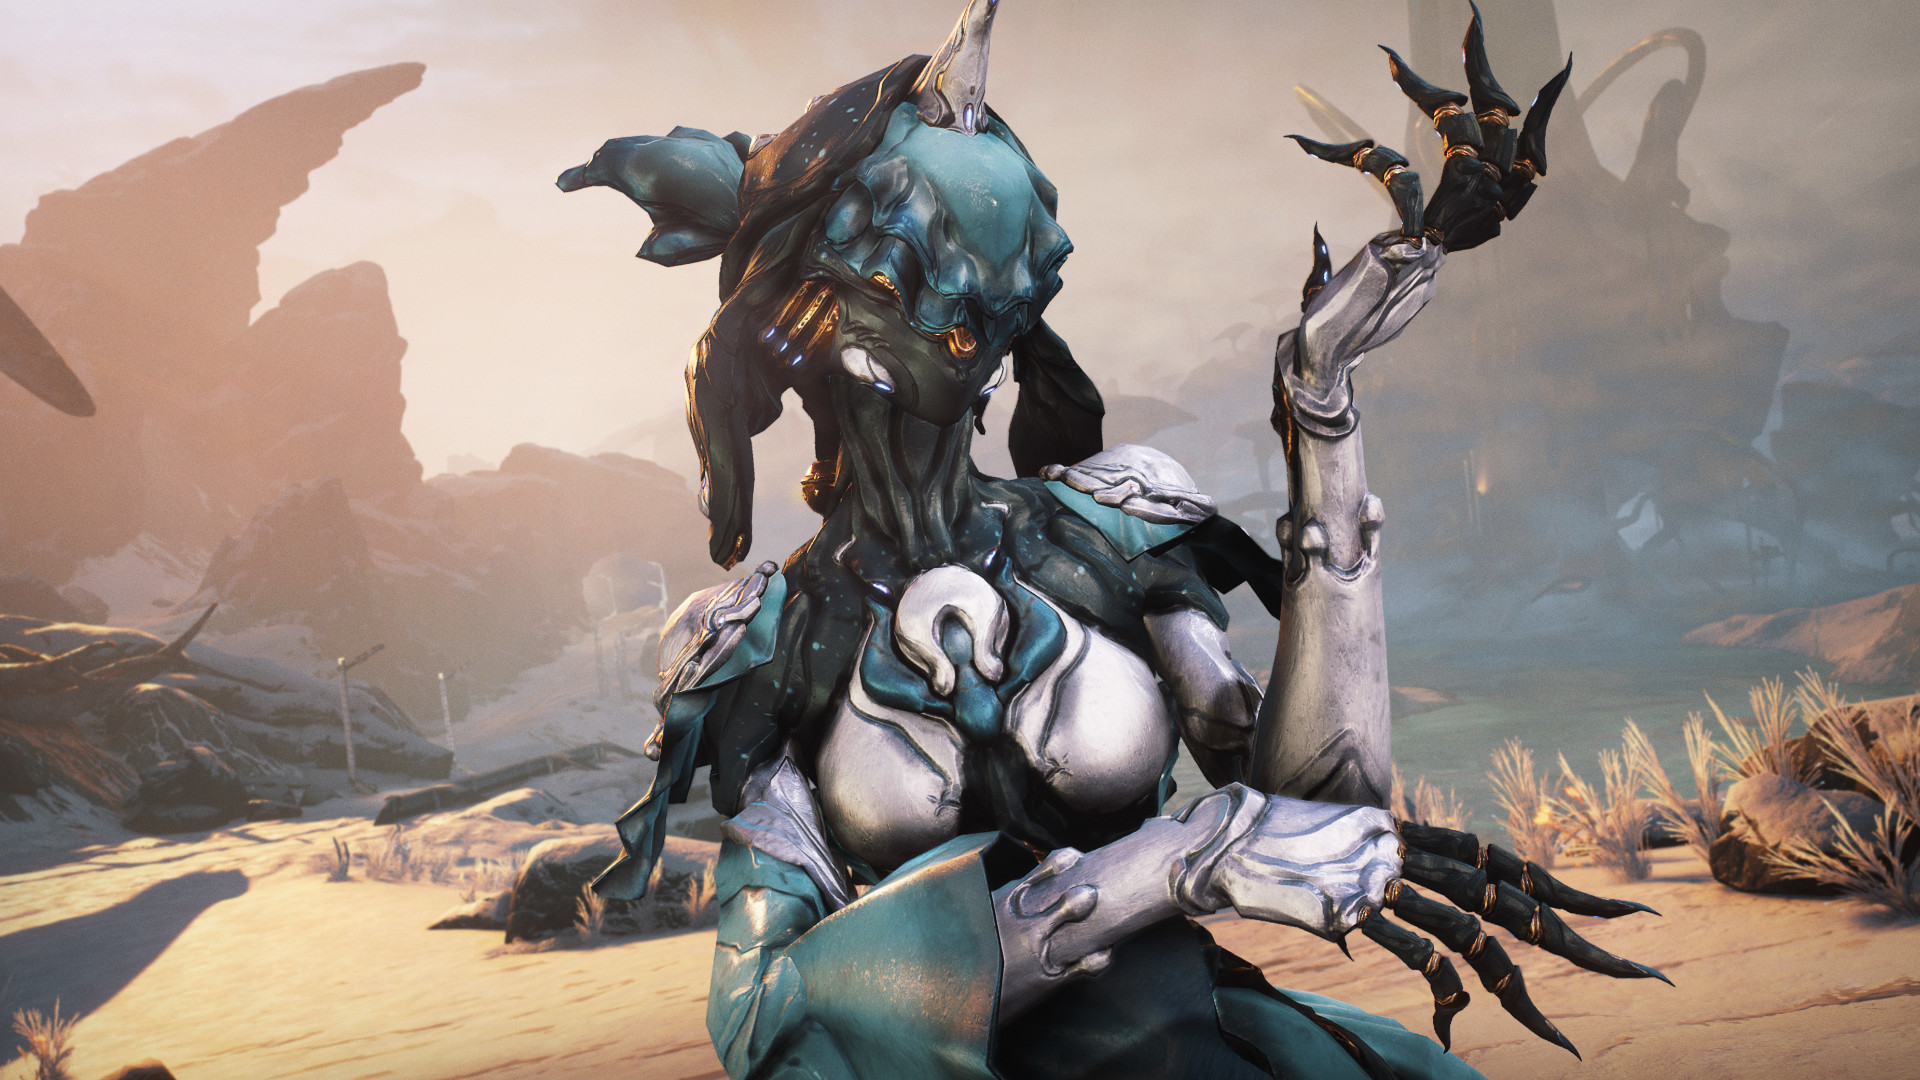 Warframe: Sisters of Parvos launches in six days